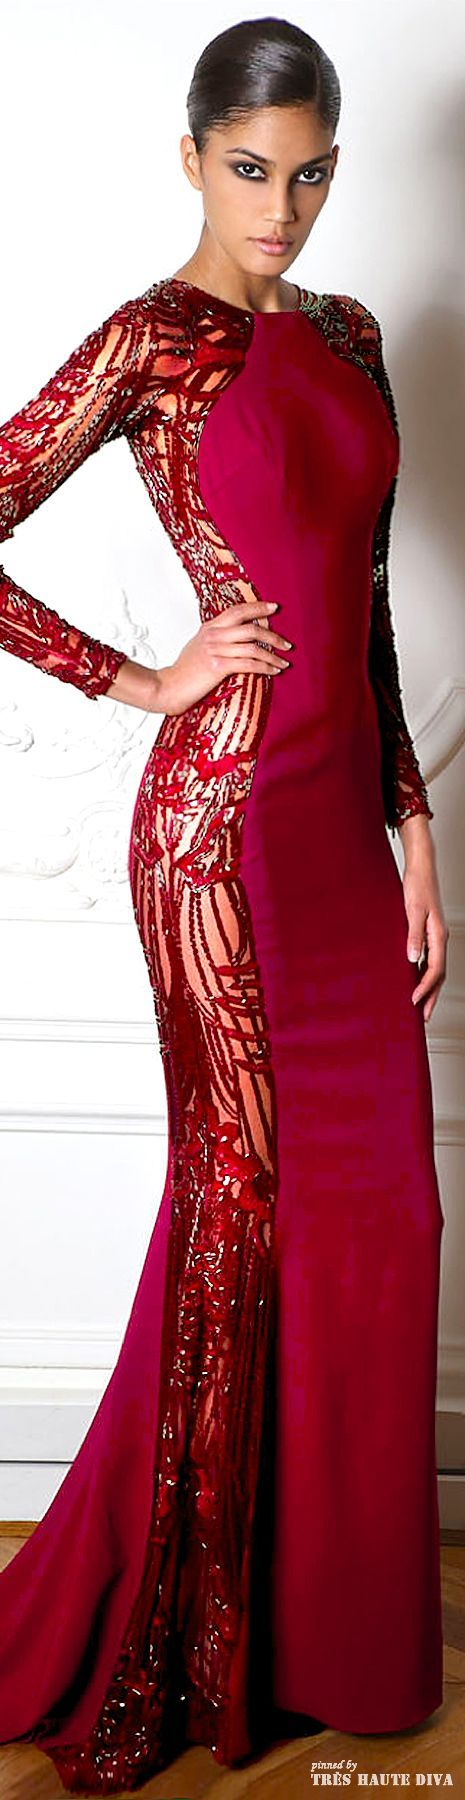 @roressclothes clothing ideas #women fashion burgundy maxi dress